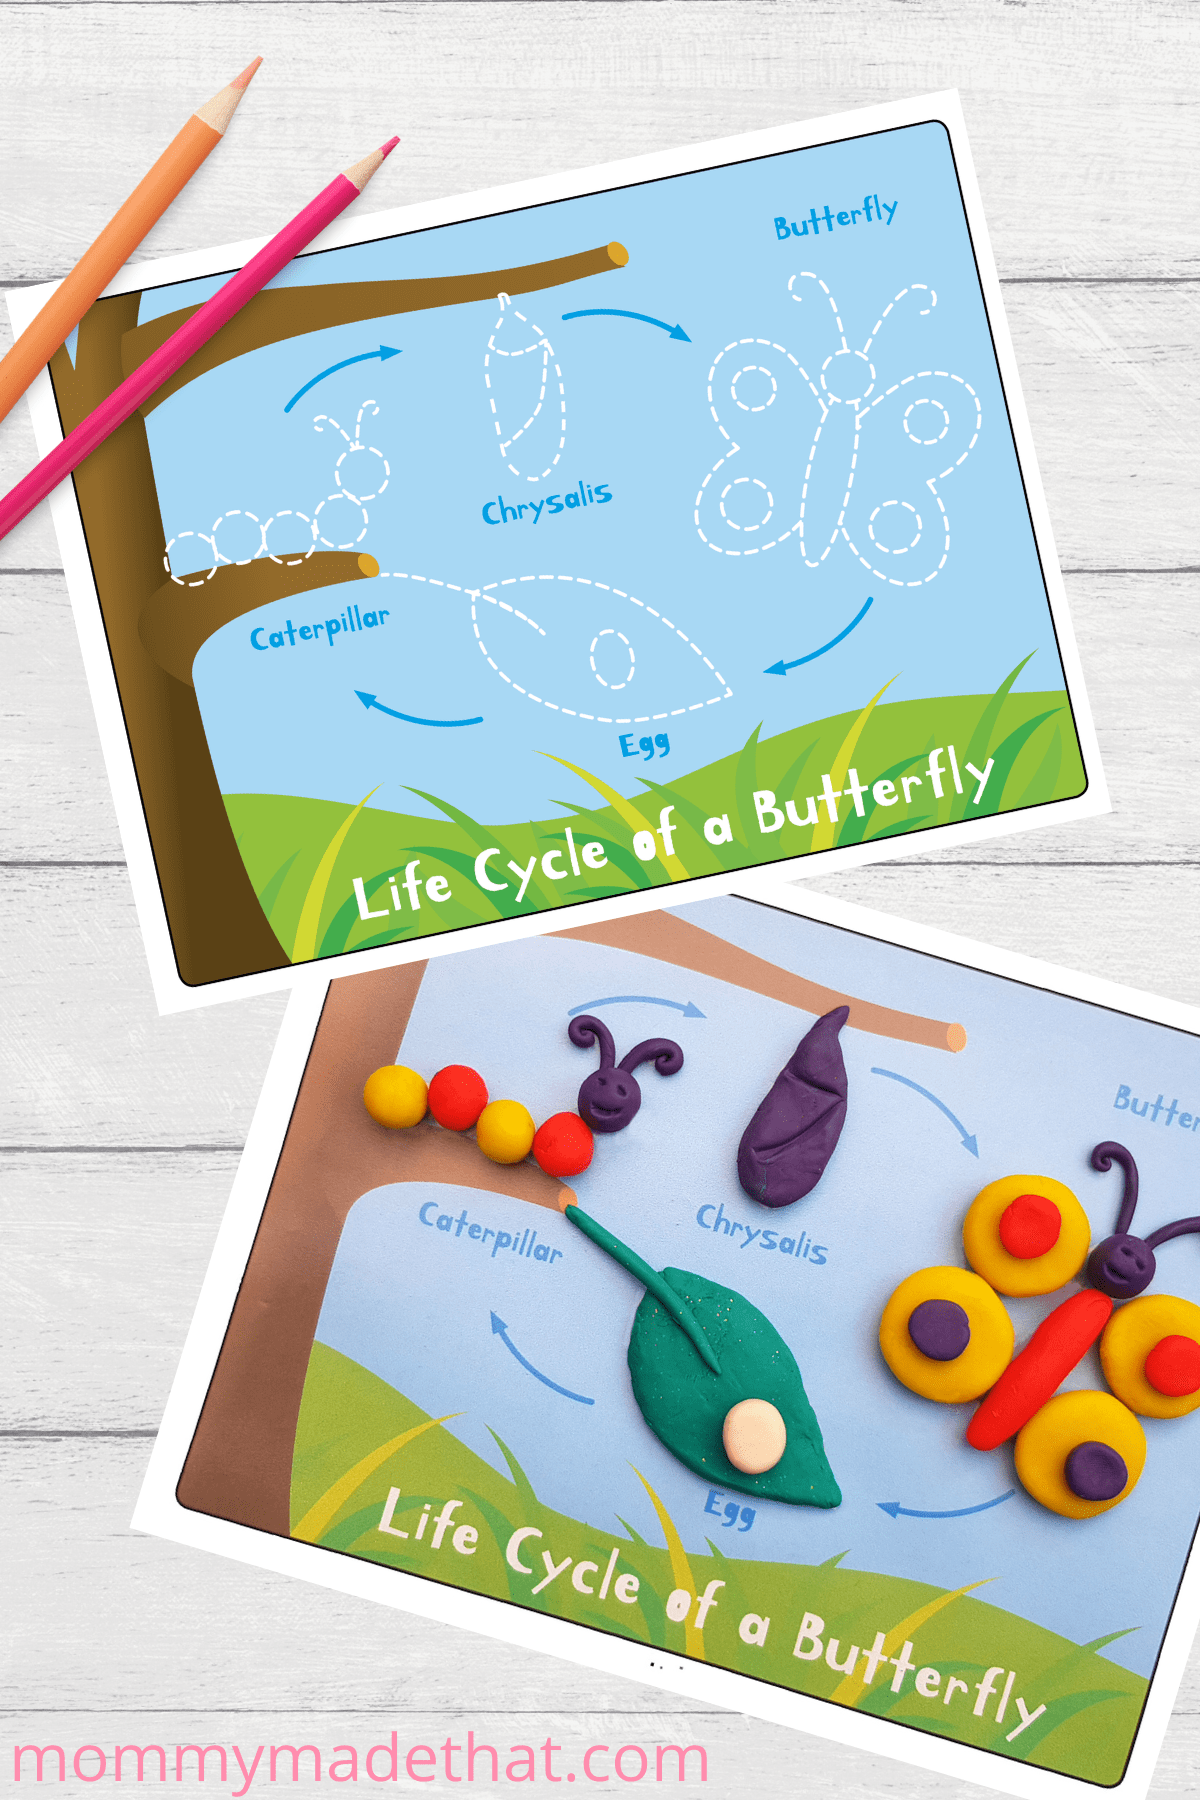 butterfly life cycle activity for kids. Free printable play doh mat.